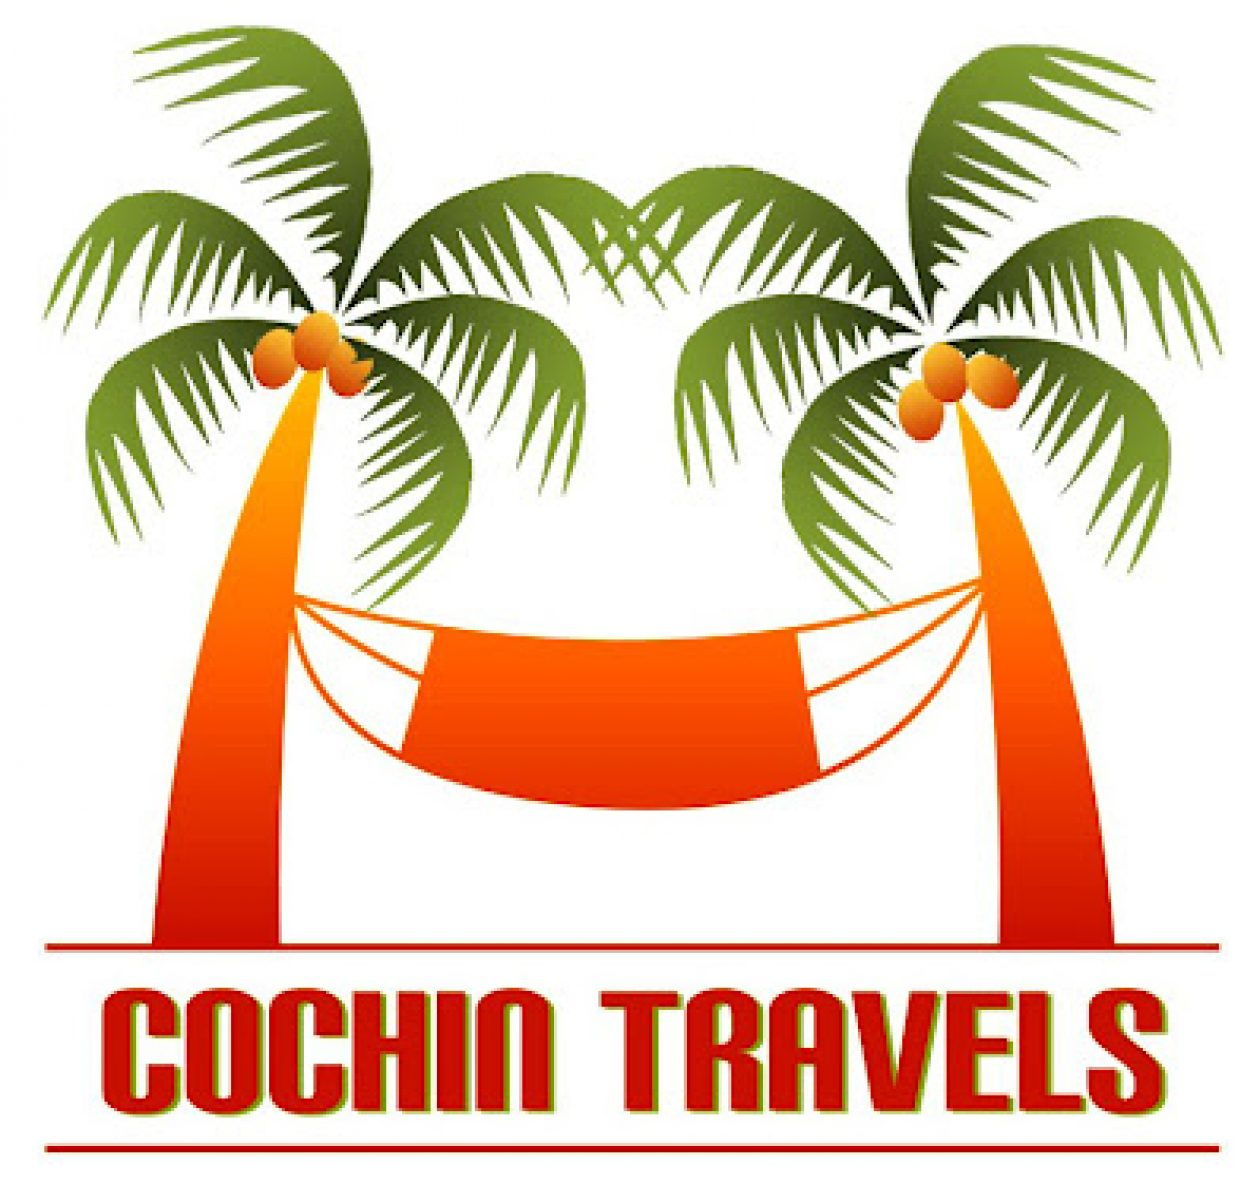 cochintravels.com Blog